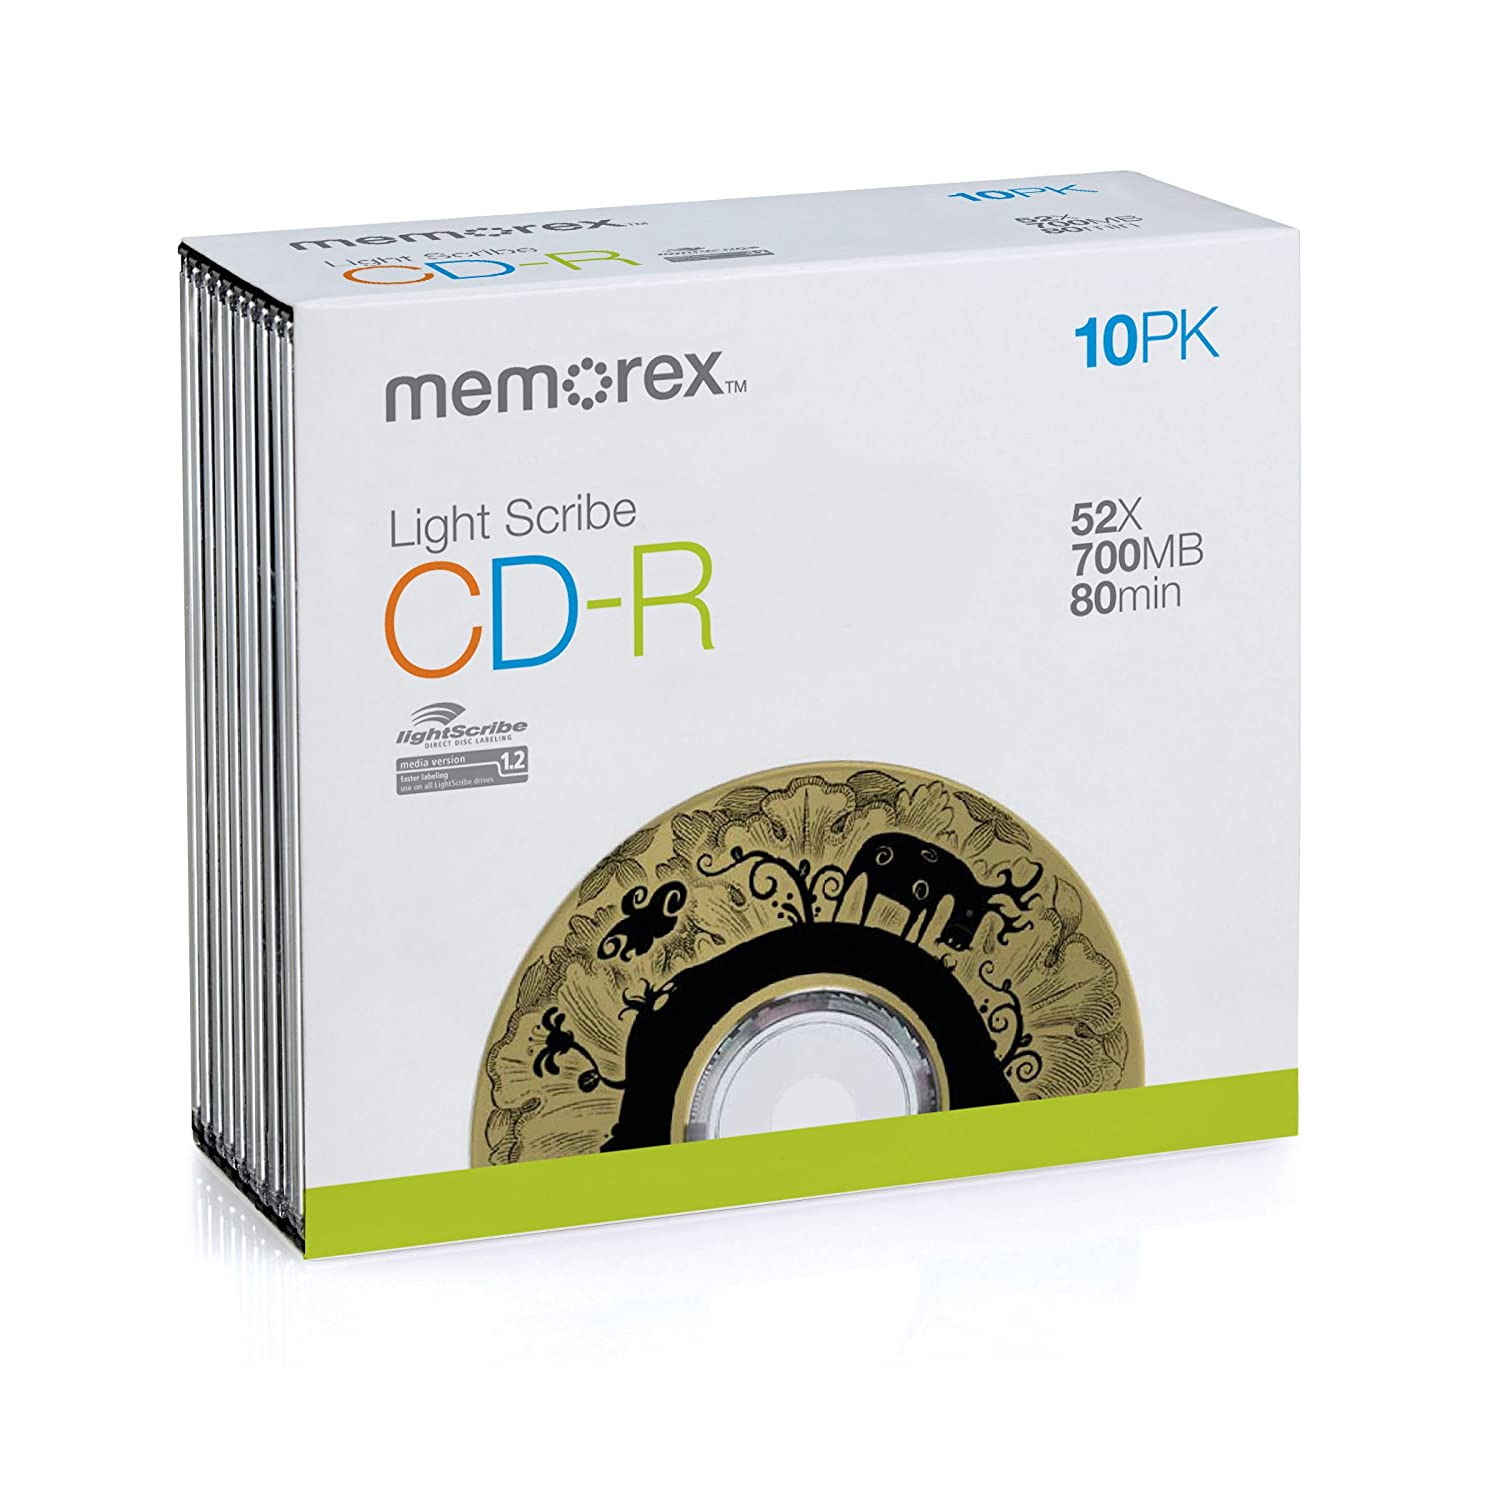 Memorex 10PK CDR 80 SLIM LIGHTSCRIBE (32024731) (Discontinued by Manufacturer) Memtek